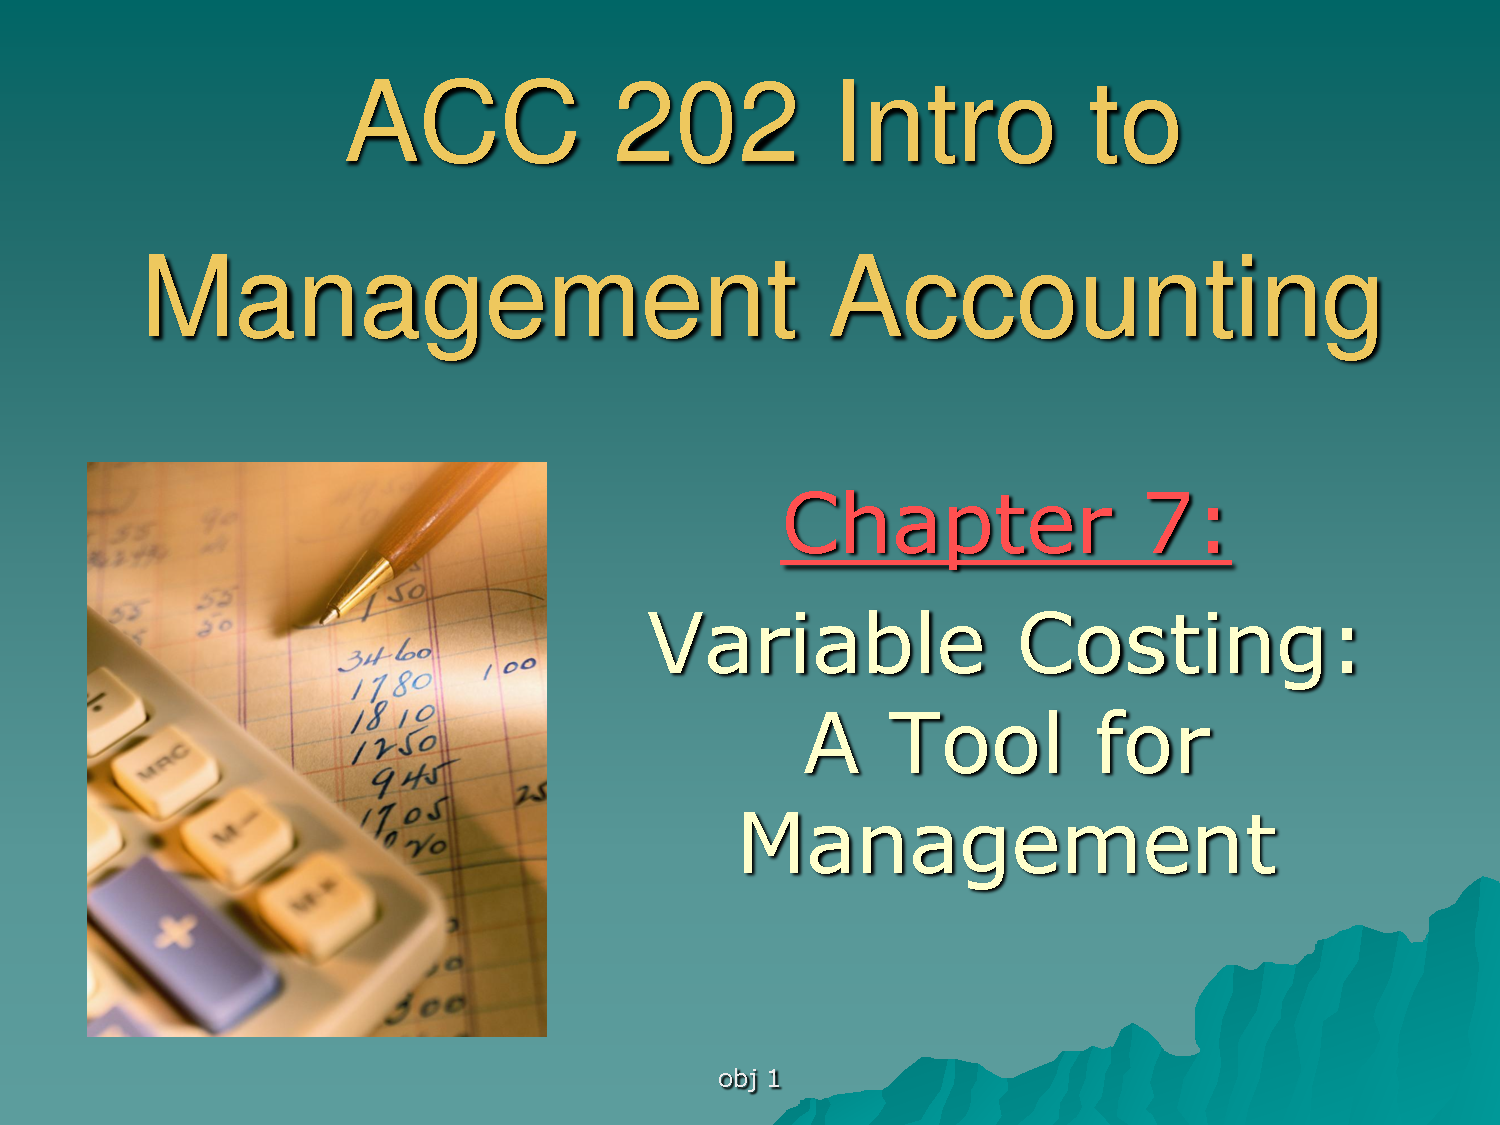 Lecture on Variable Costing